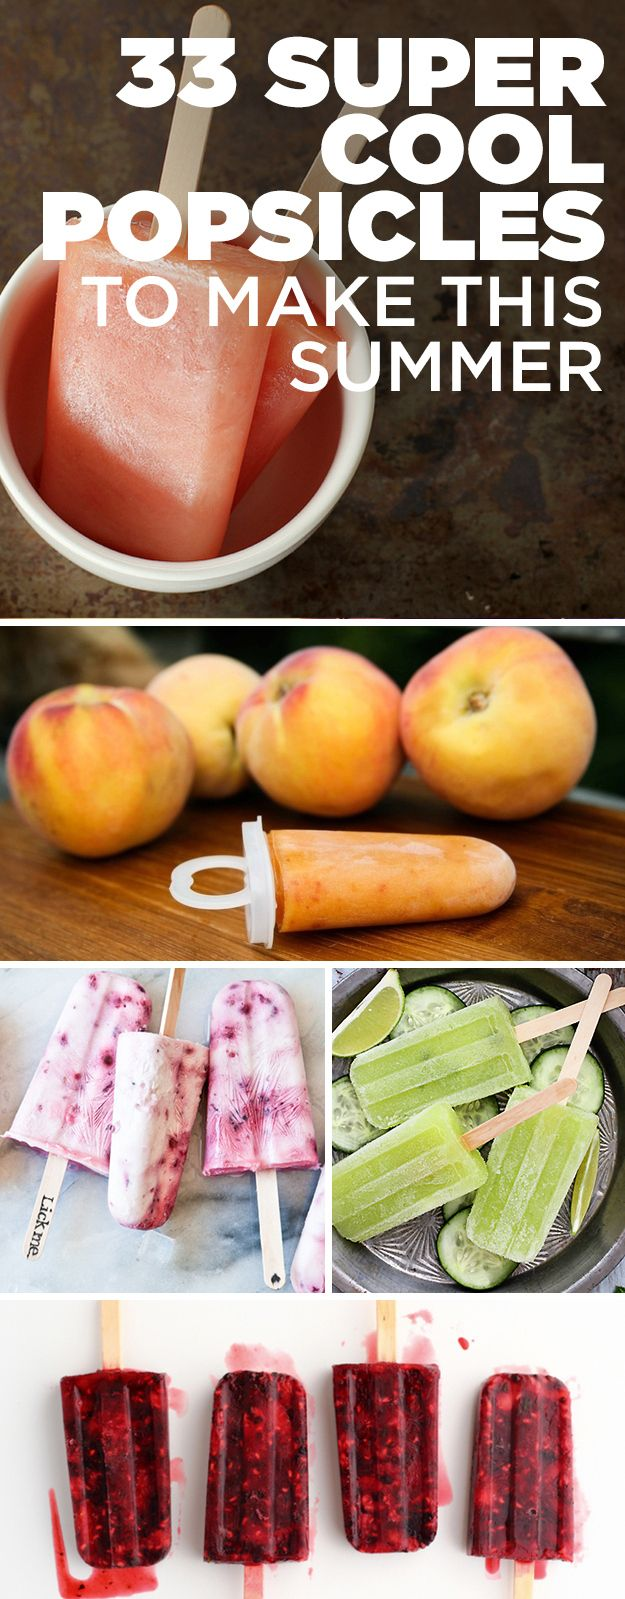 33 Super-Cool Popsicles To Make This Summer #desserts #dessertrecipes #yummy #delicious #food #sweet